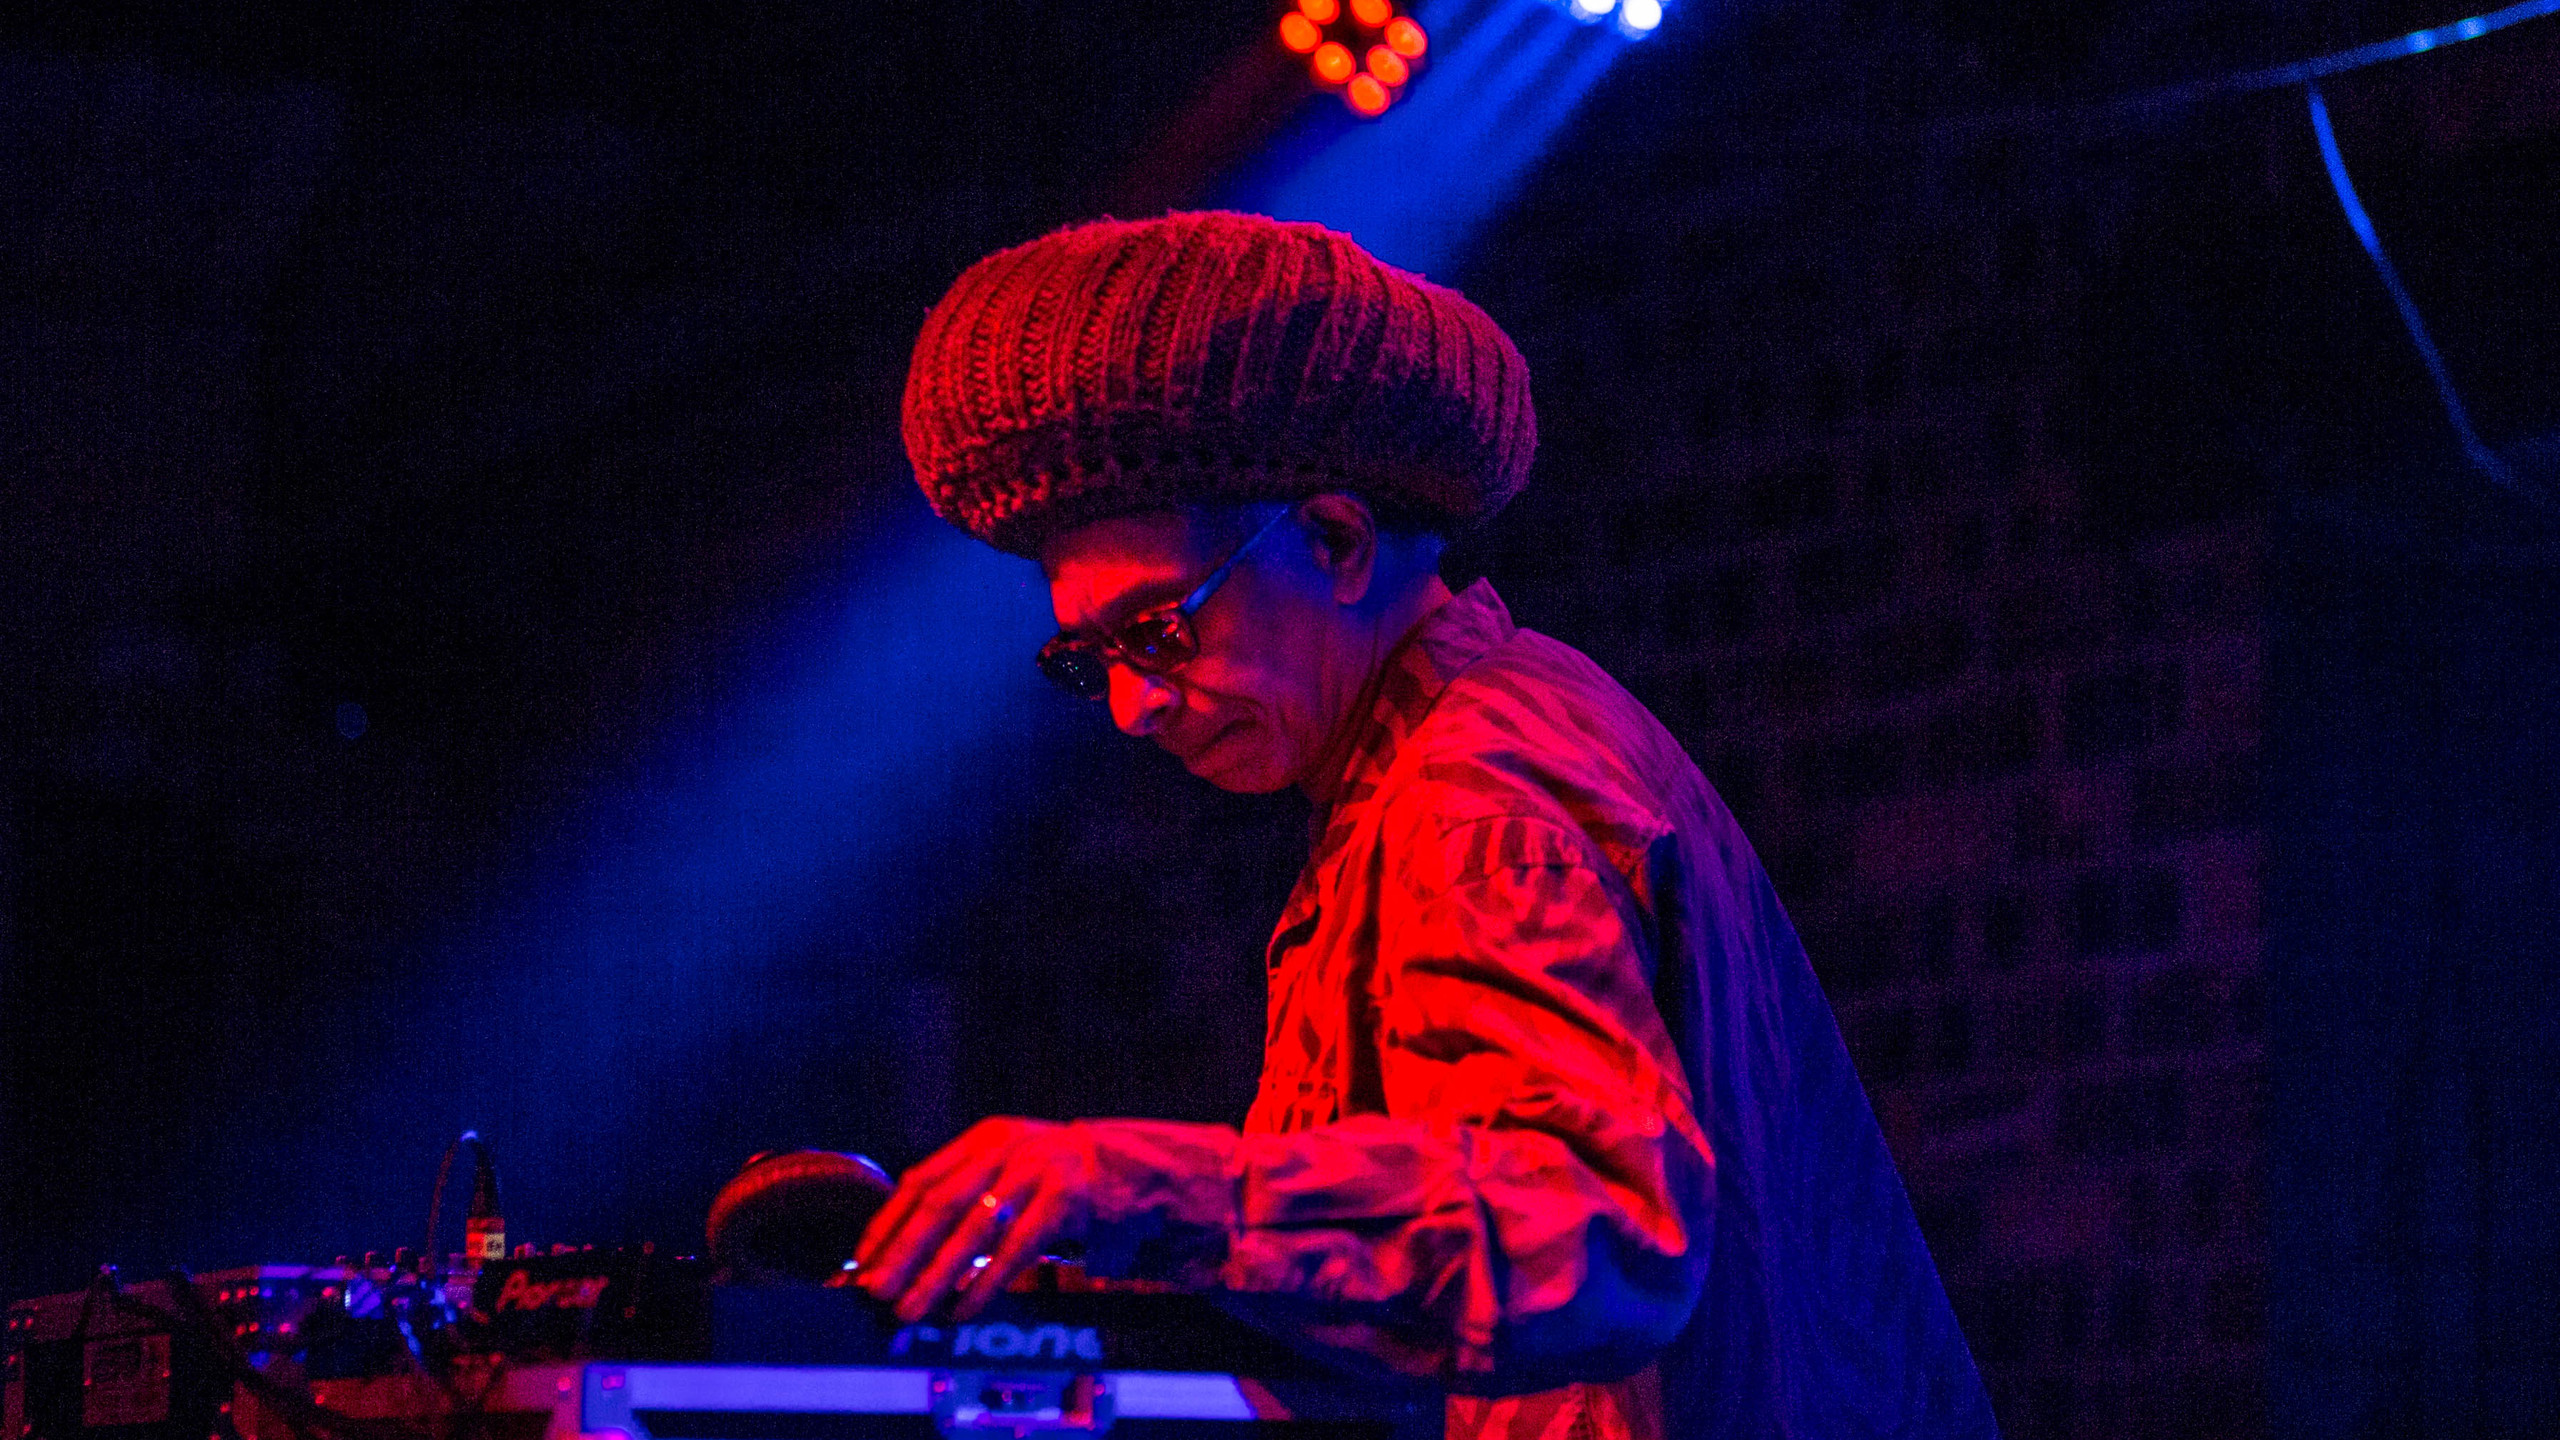 Don Letts - Central station